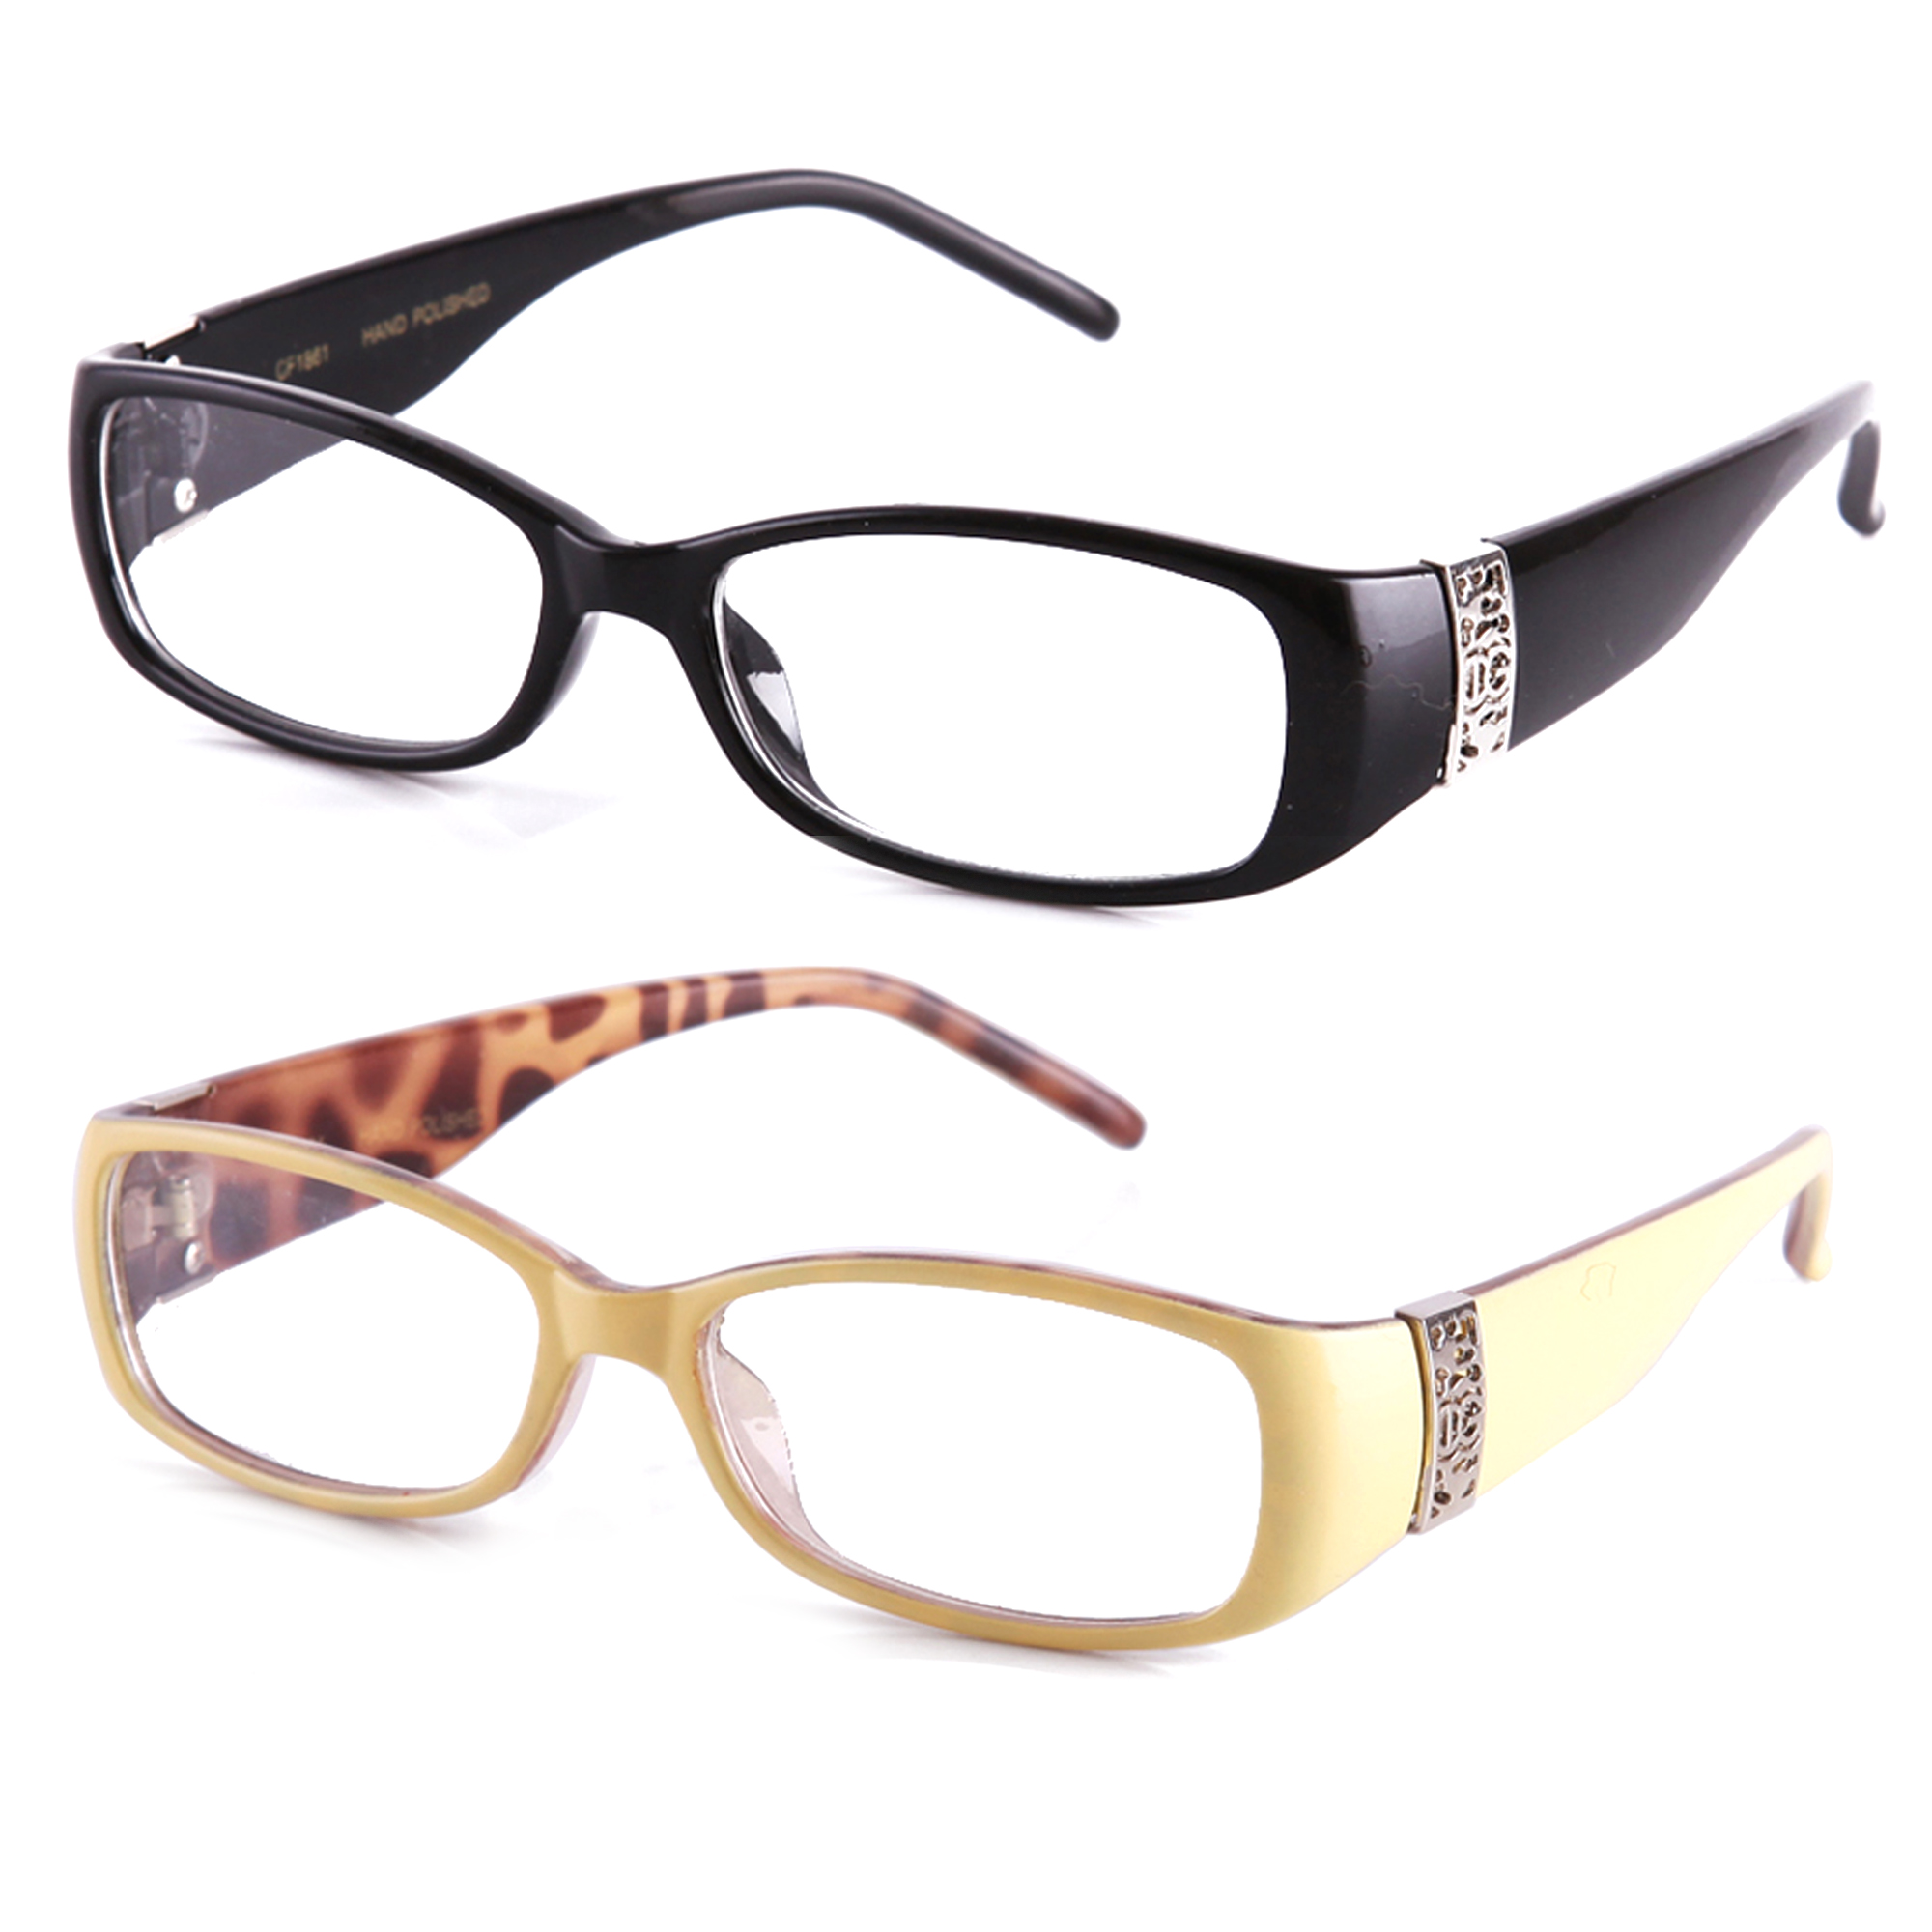 Newbee Fashion Stylish Women Clear Lens Eye Glasses Squared Small Frame Two Tone Colors